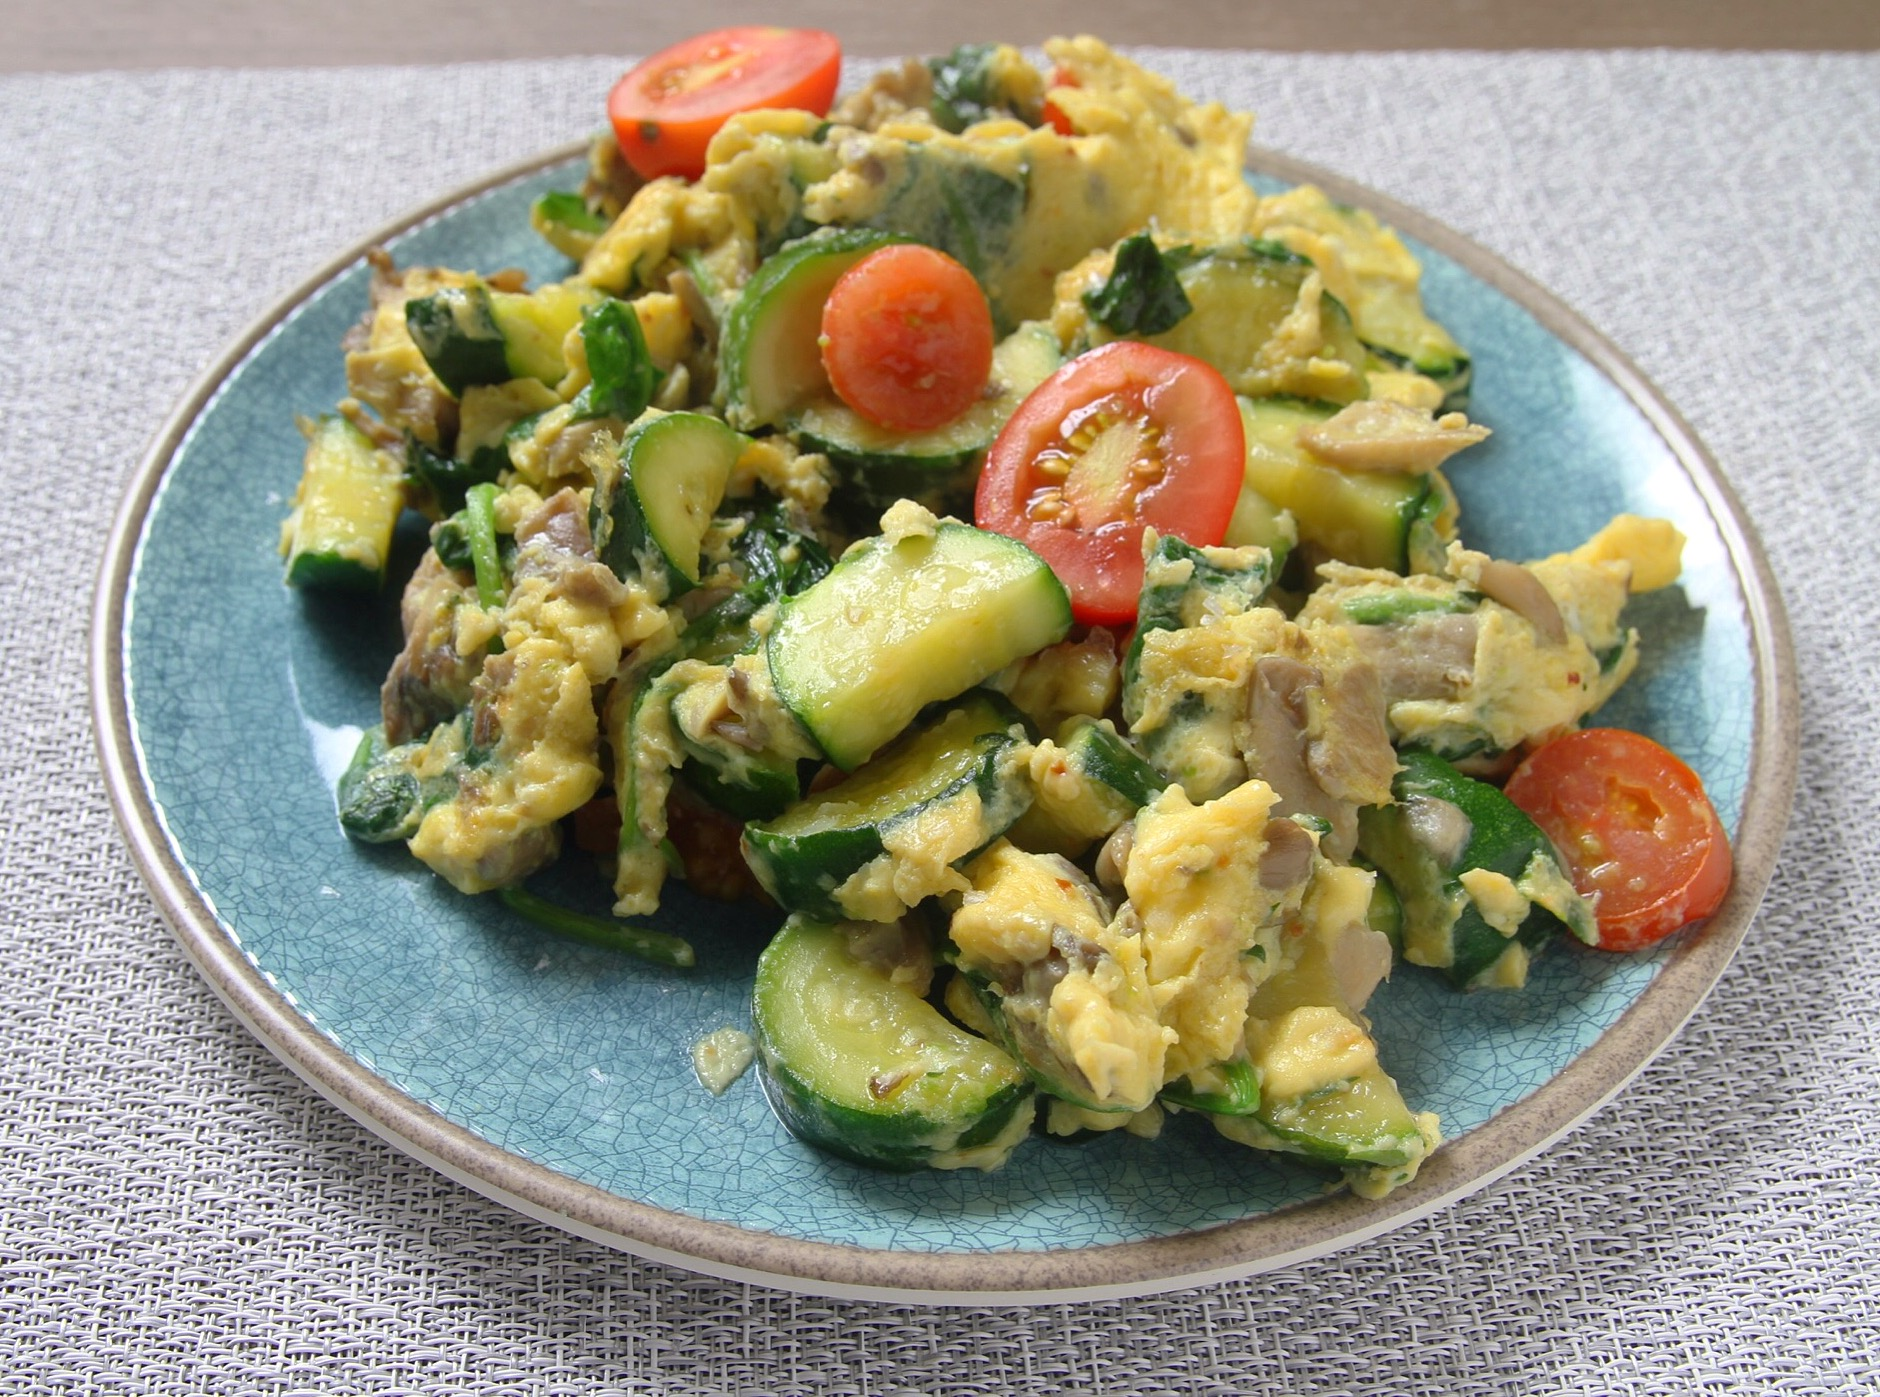 Scrambled eggs with zucchini, mushrooms, spinach, and tomatoes.